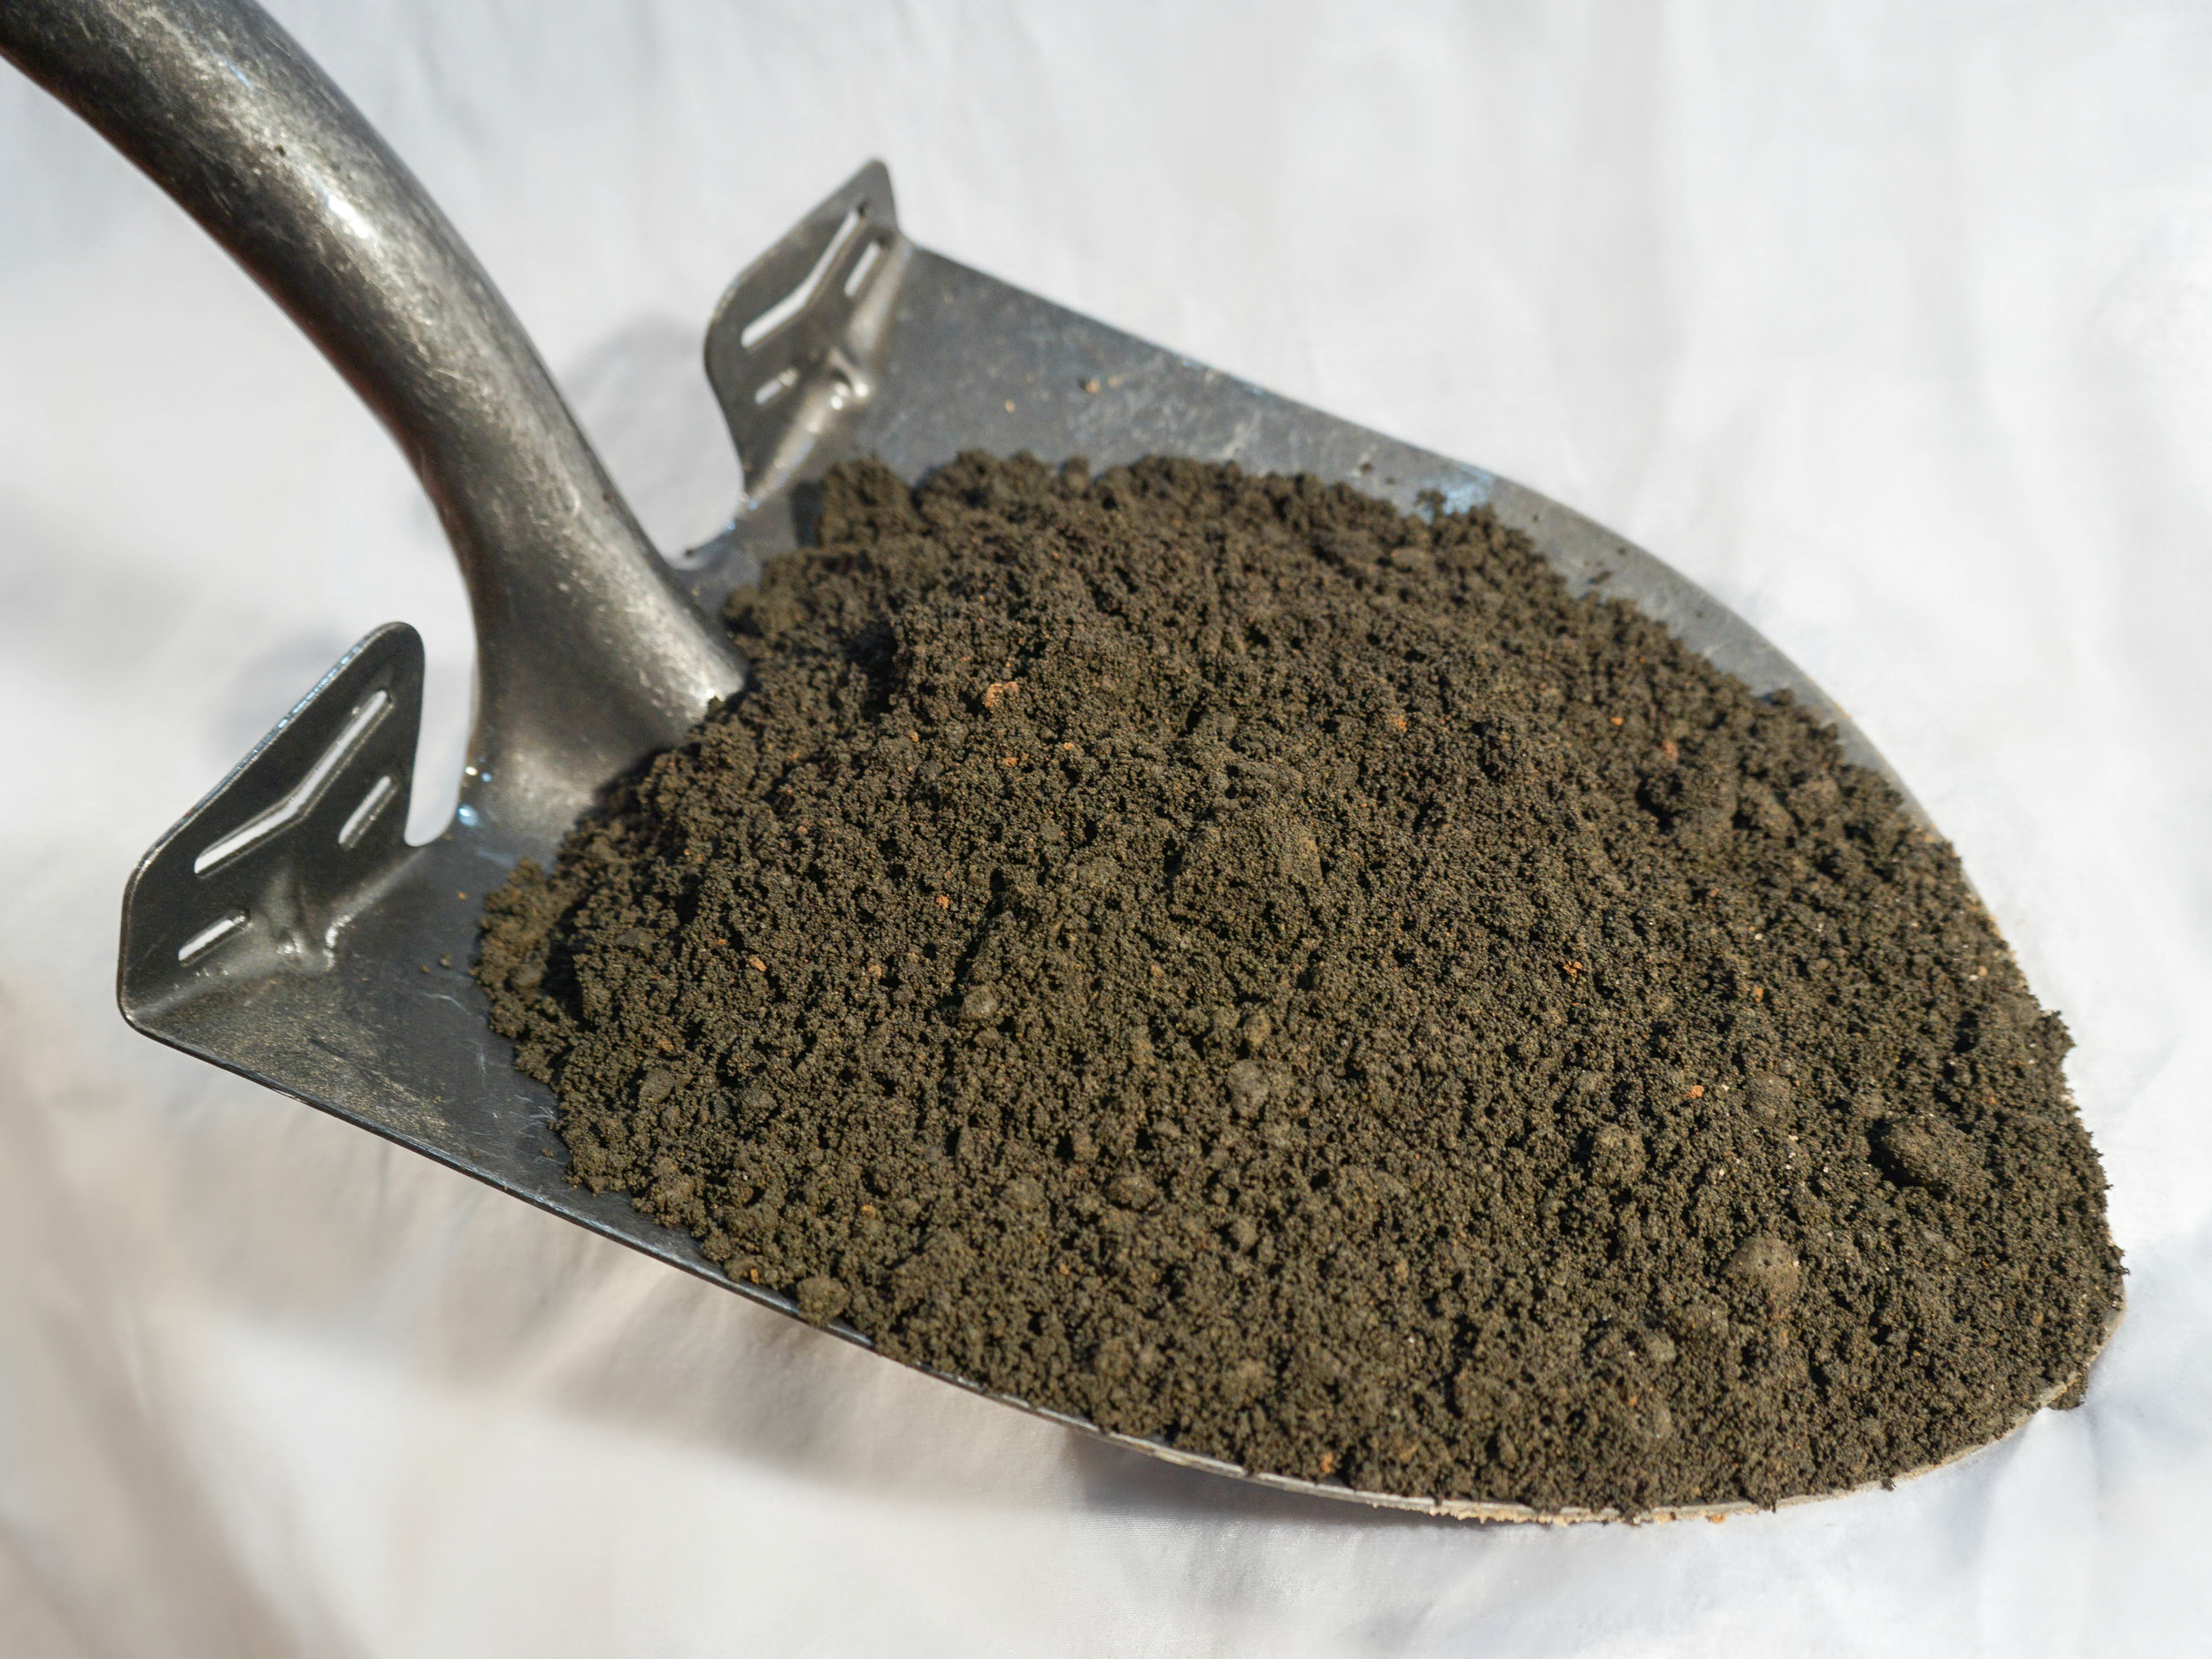 Texas Greensand - $100 per cubic yardPotassium phyllosilicate or clay mineral. Mined from historical ocean-floor deposits. High in K and micronutrients.Organic fertilizer, enhances green tissue, amends clay soils.